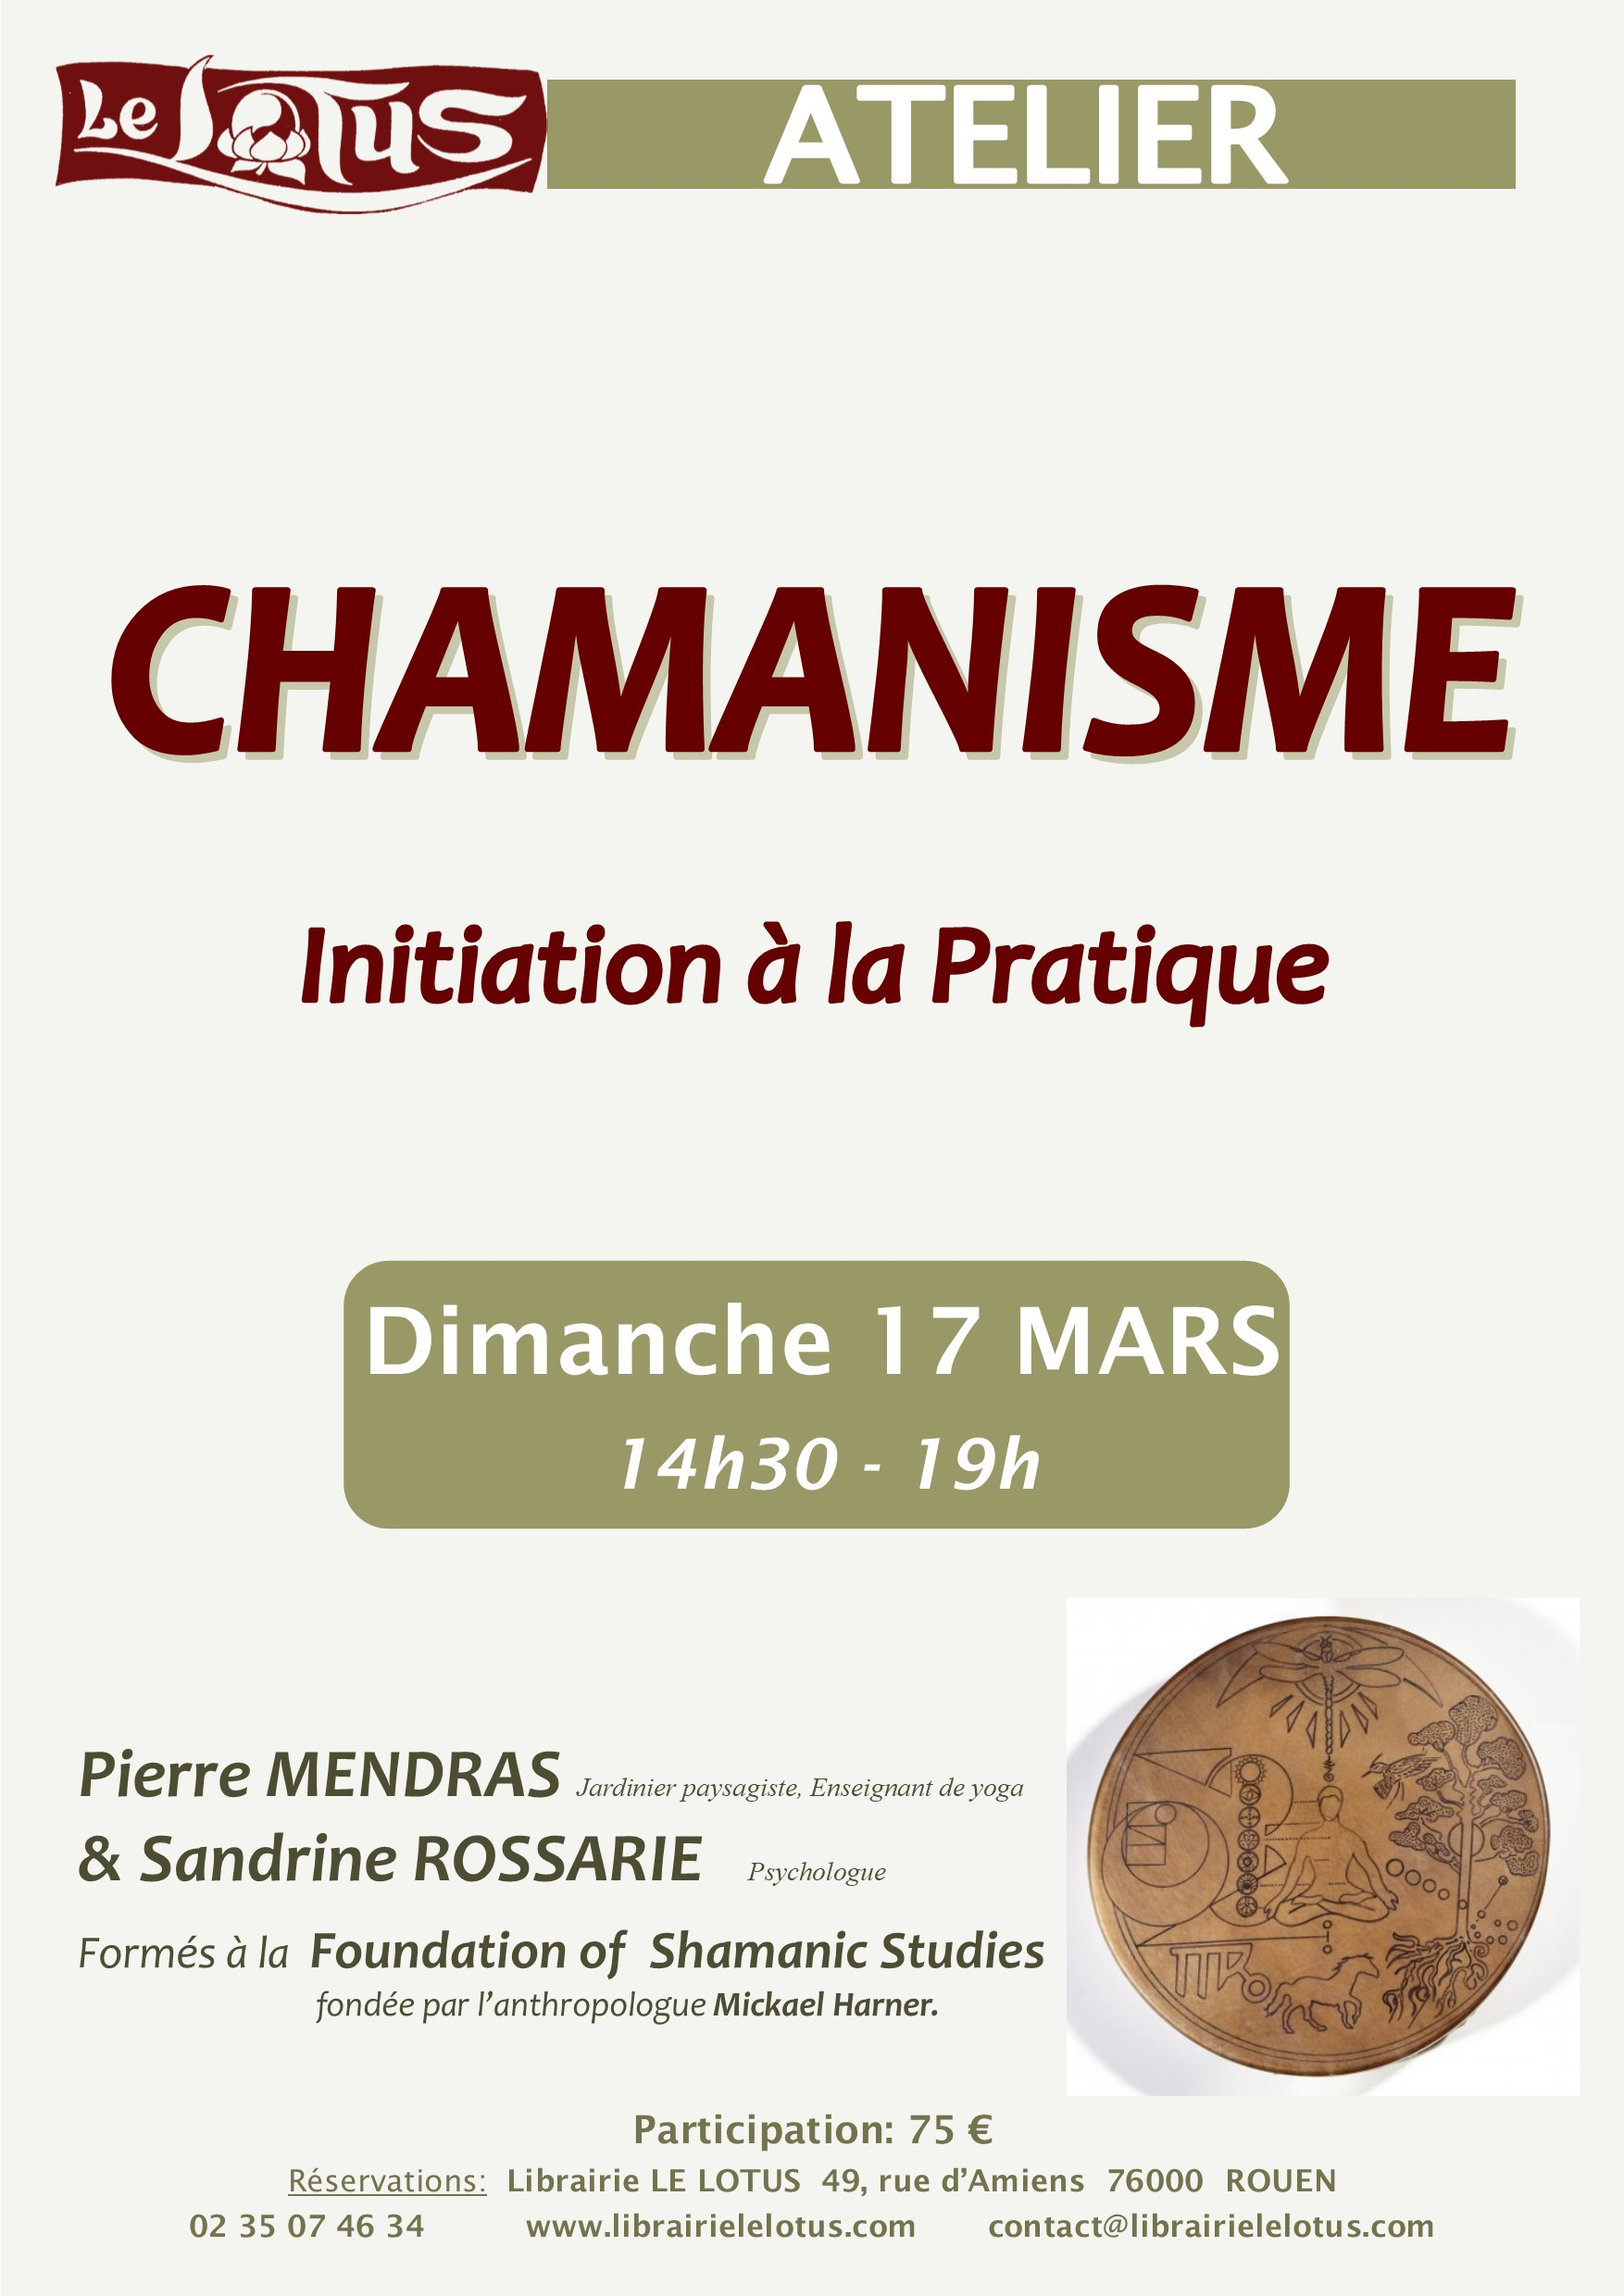 ATELIER - CHAMANISME - INITIATION